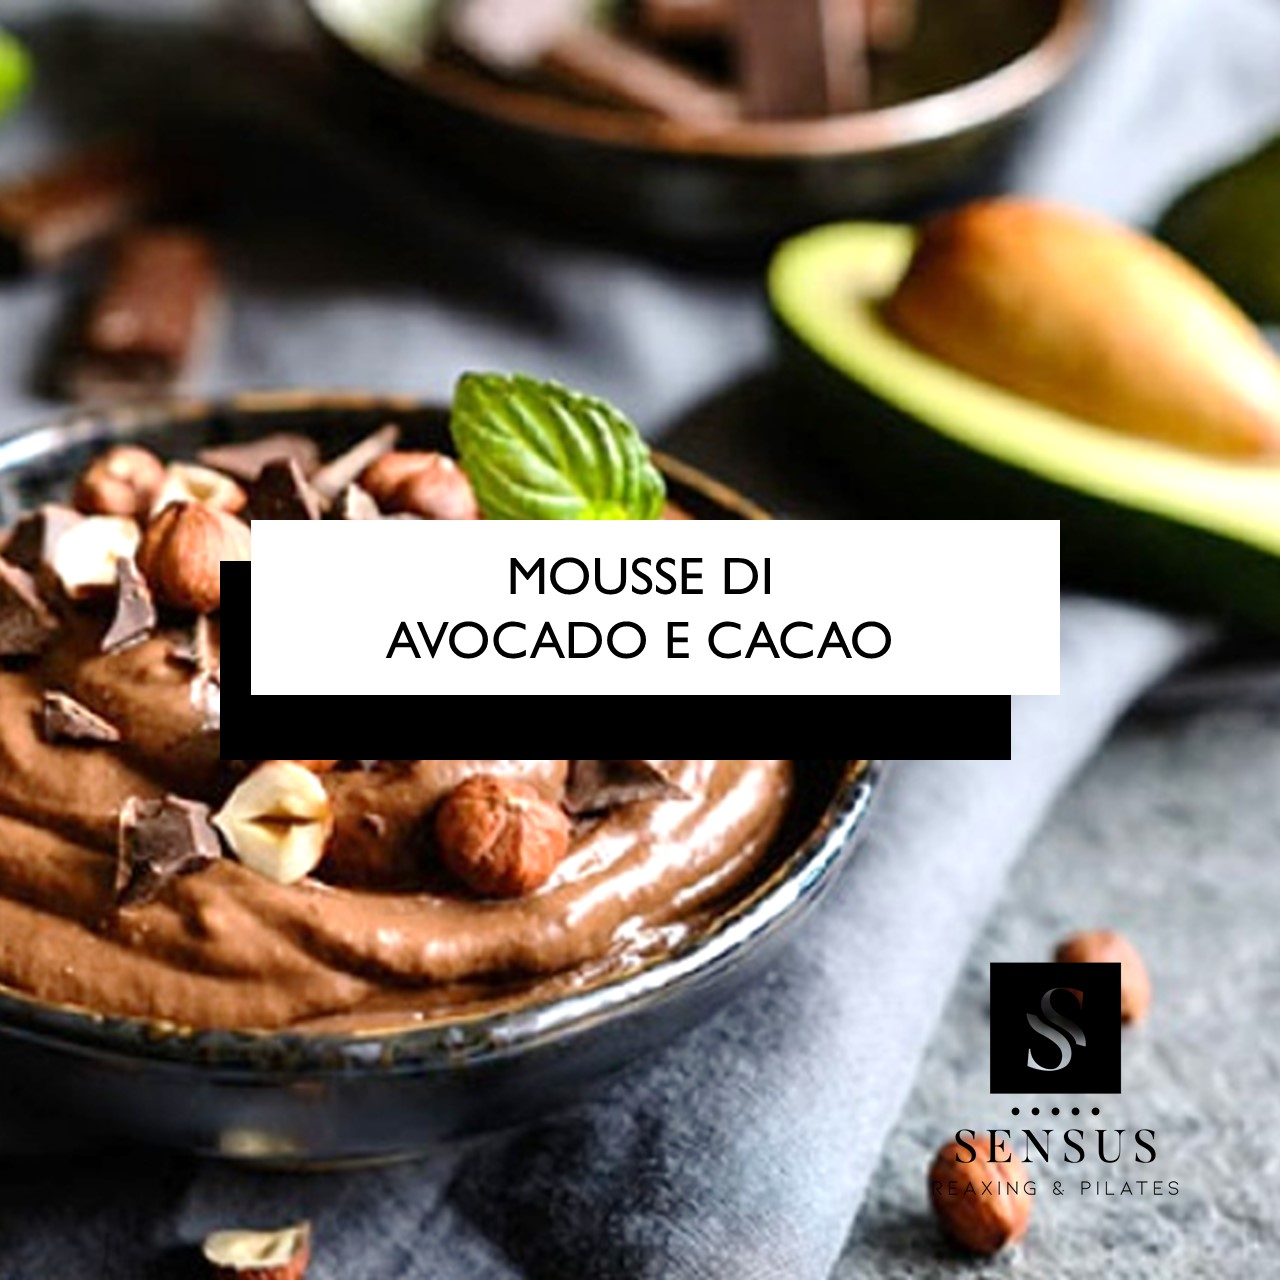 MOUSSE DI AVOCADO E CACAO